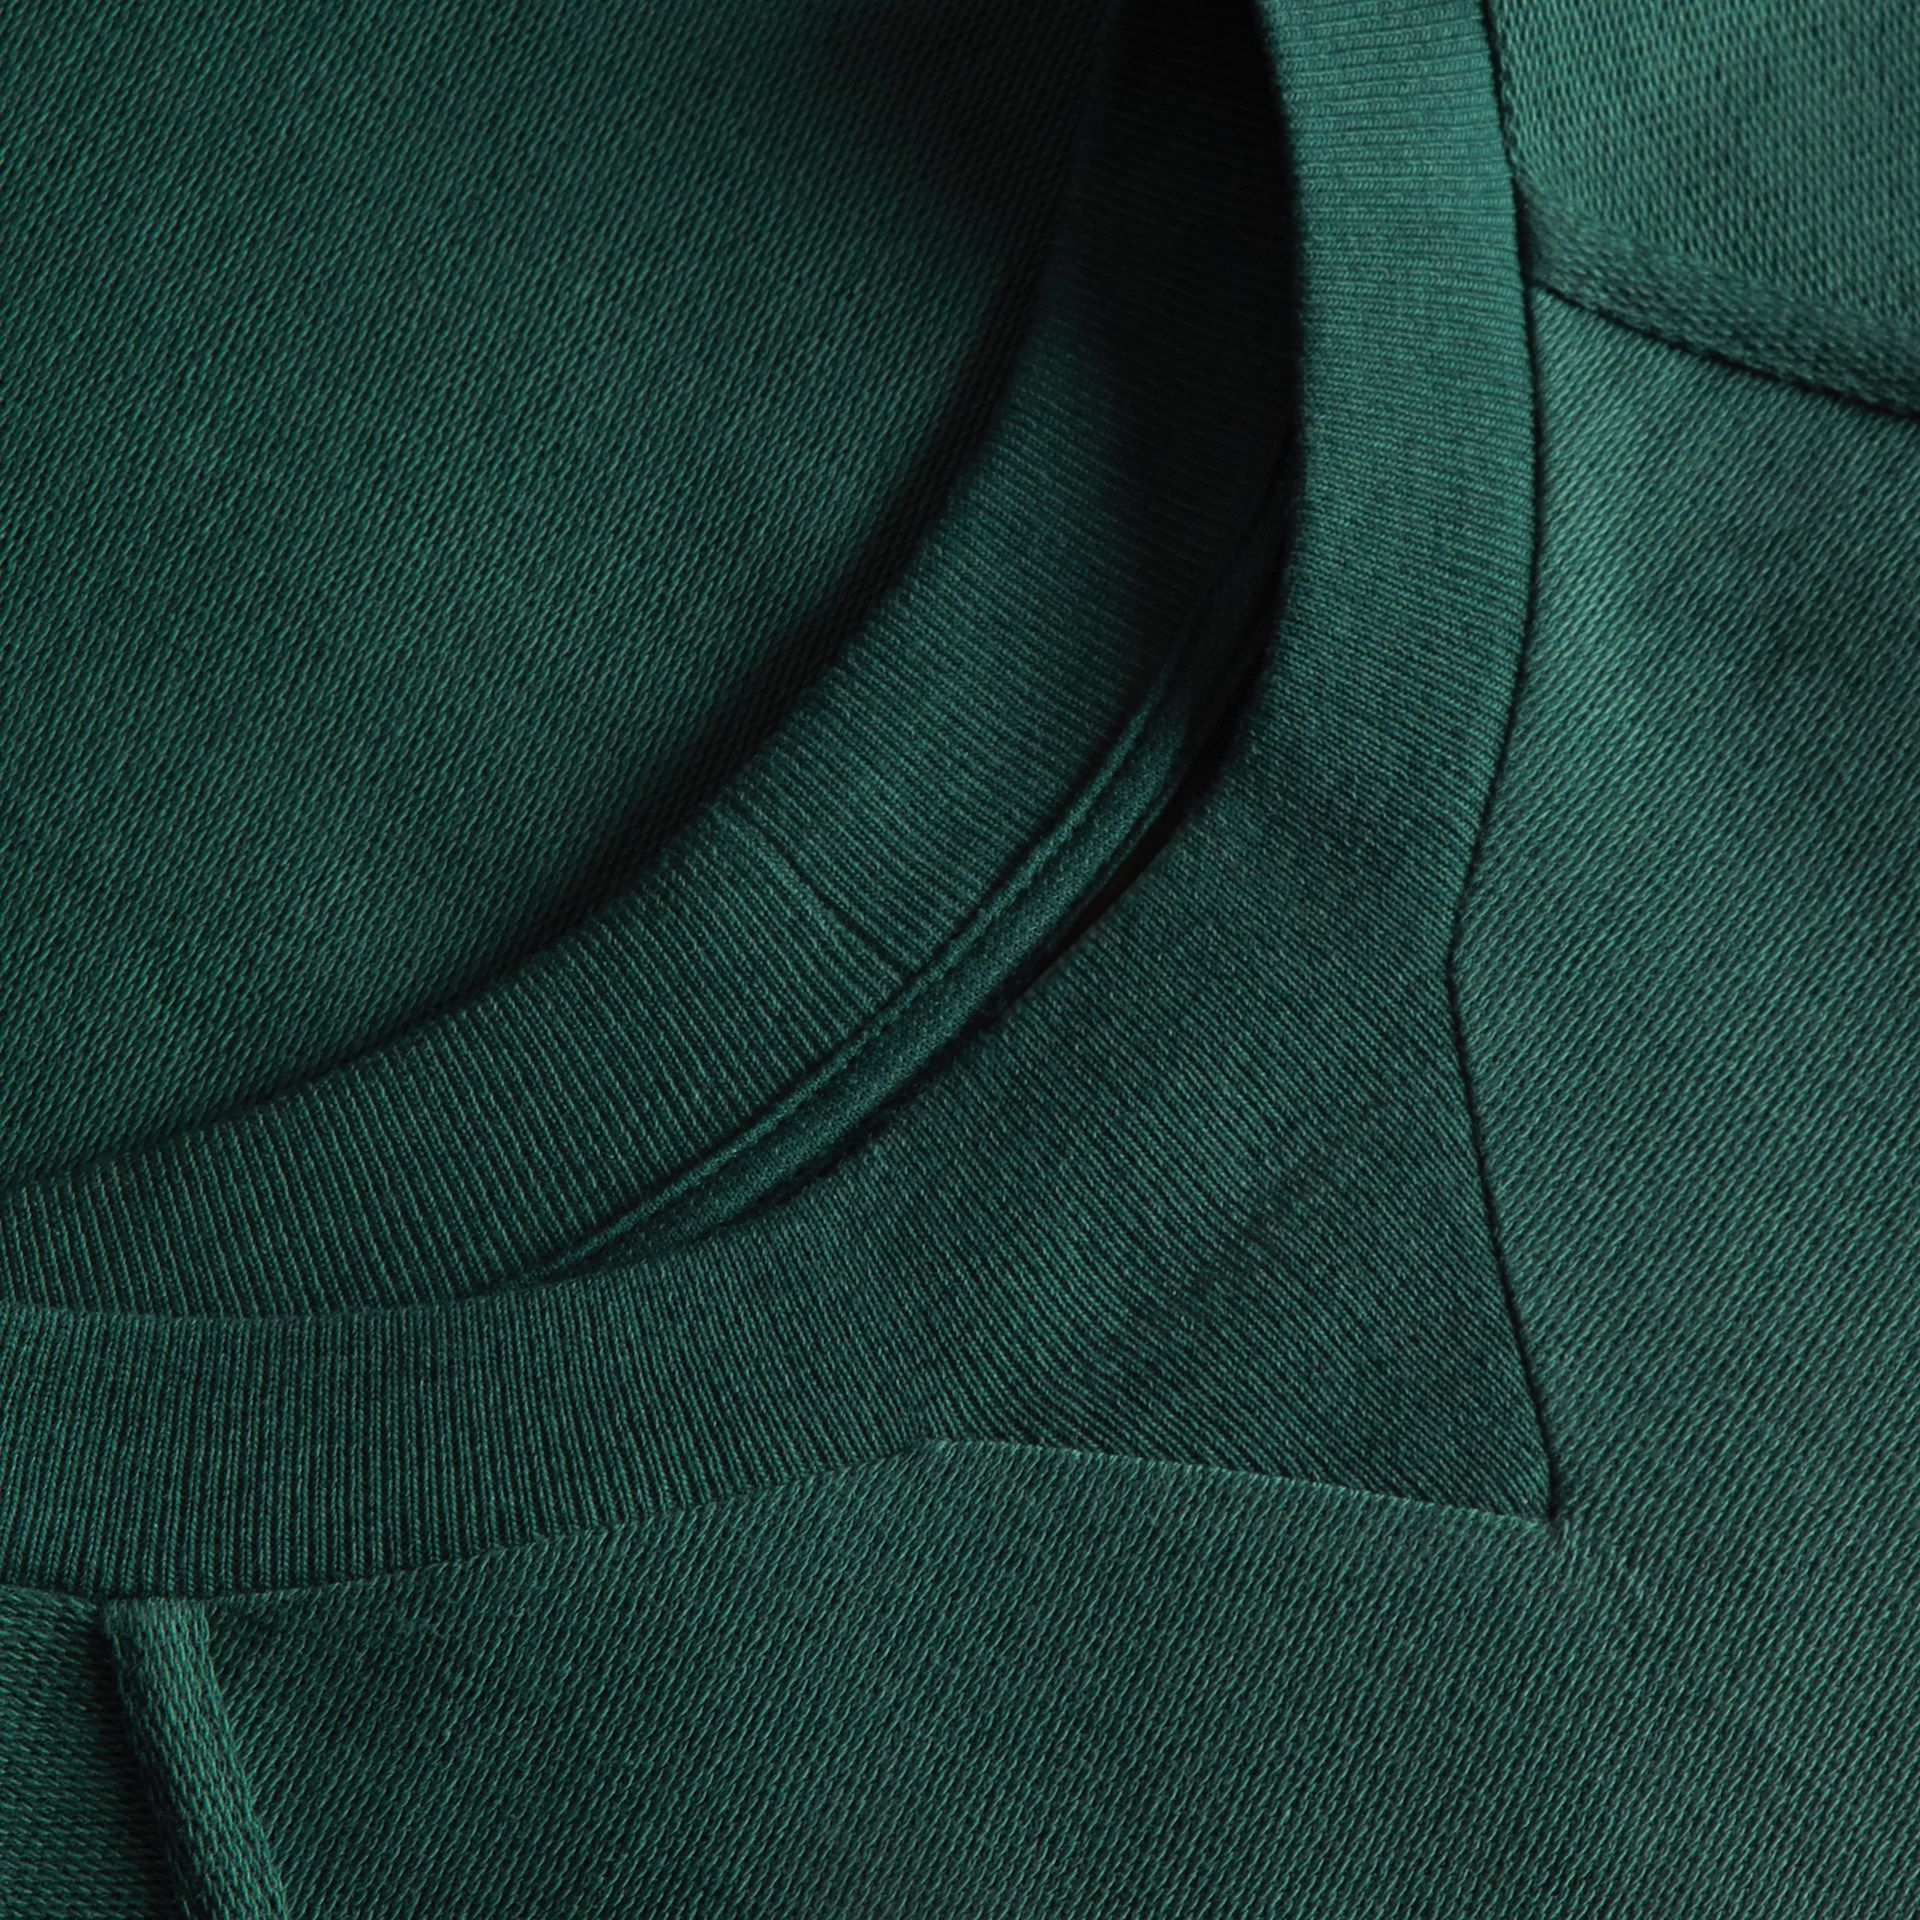 Embroidered Motif Cotton-blend Jersey Sweatshirt in Deep Teal - Men | Burberry - gallery image 2